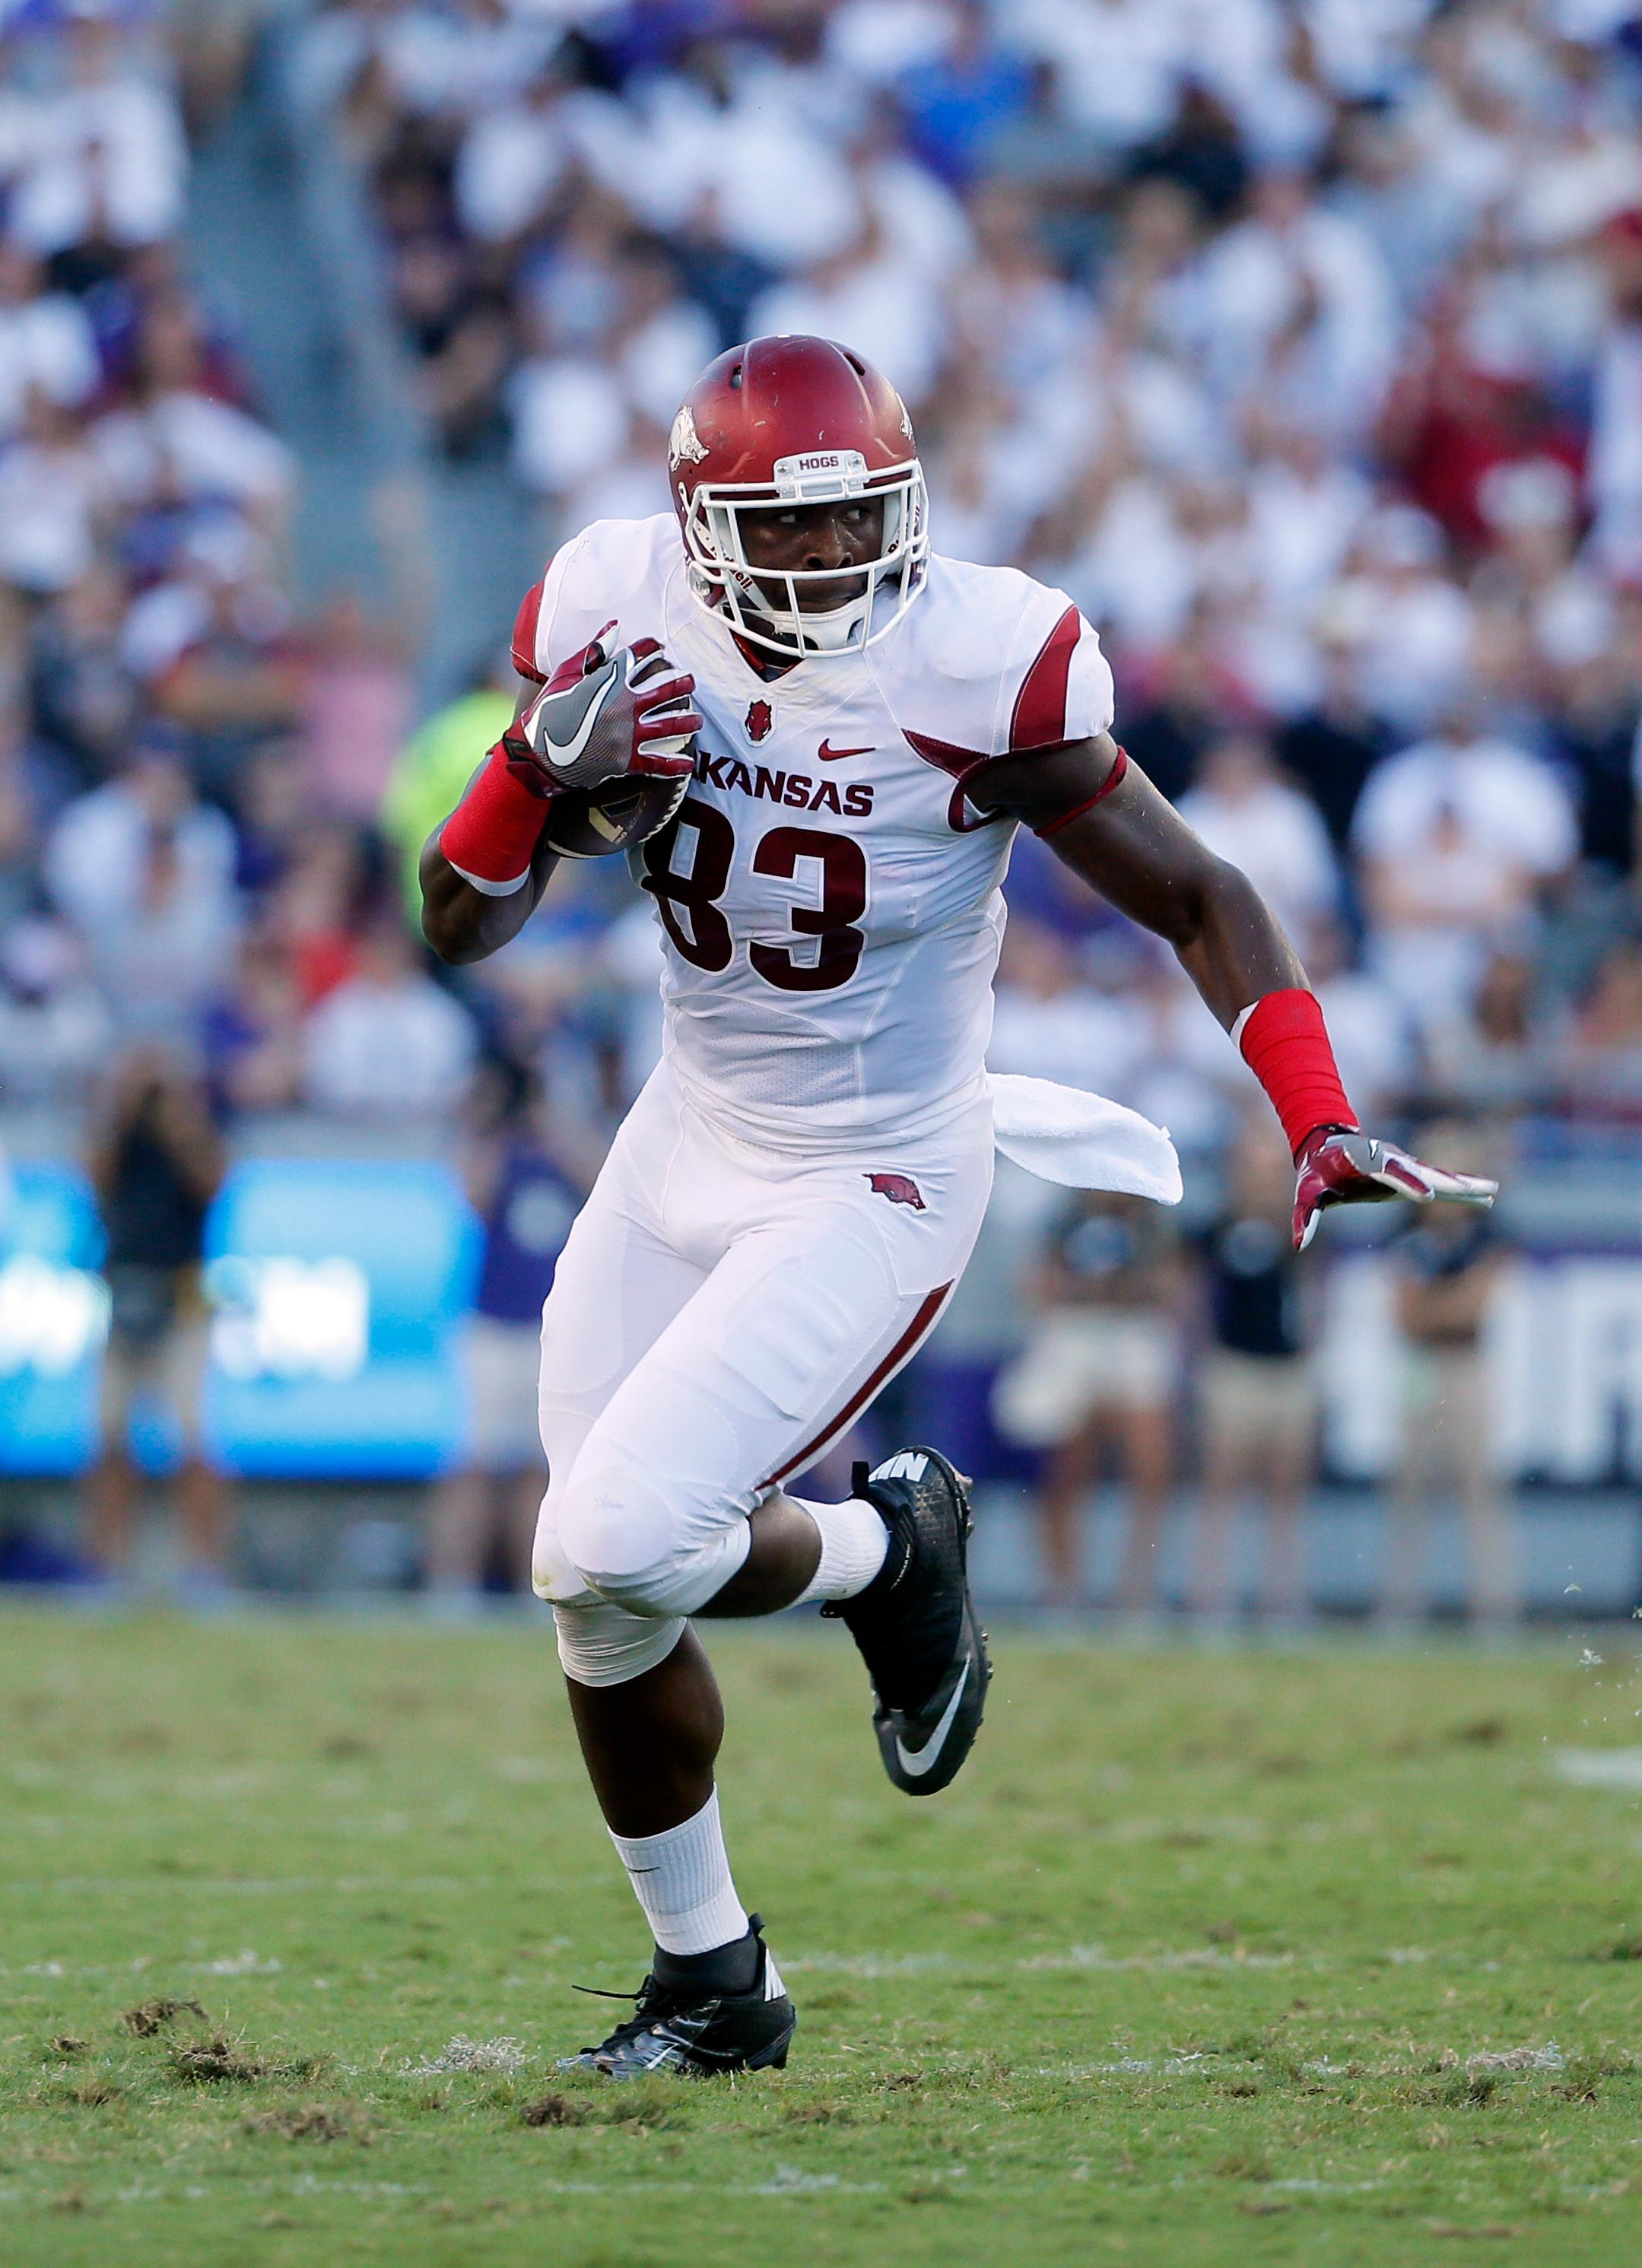 Arkansas tight end Jeremy Sprinkle (83) was selected in the fifth round by the Redskins. Sprinkle runs after catching a pass from quarterback Austin Allen, rear, during an NCAA college football game against TCU on Saturday, Sept. 10, 2016, in Fort Worth, Texas. (AP File Photo/Tony Gutierrez)